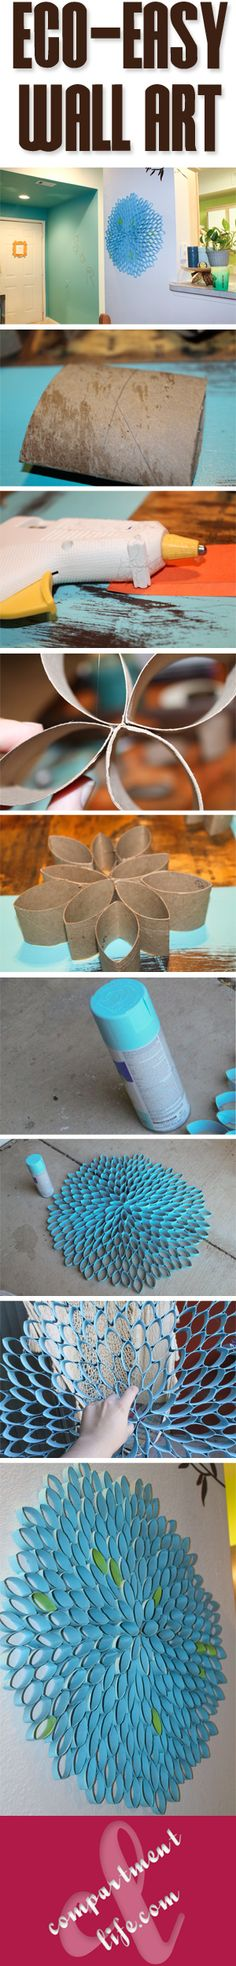 How to create a piece of wall art using toilet paper rolls and spray paint